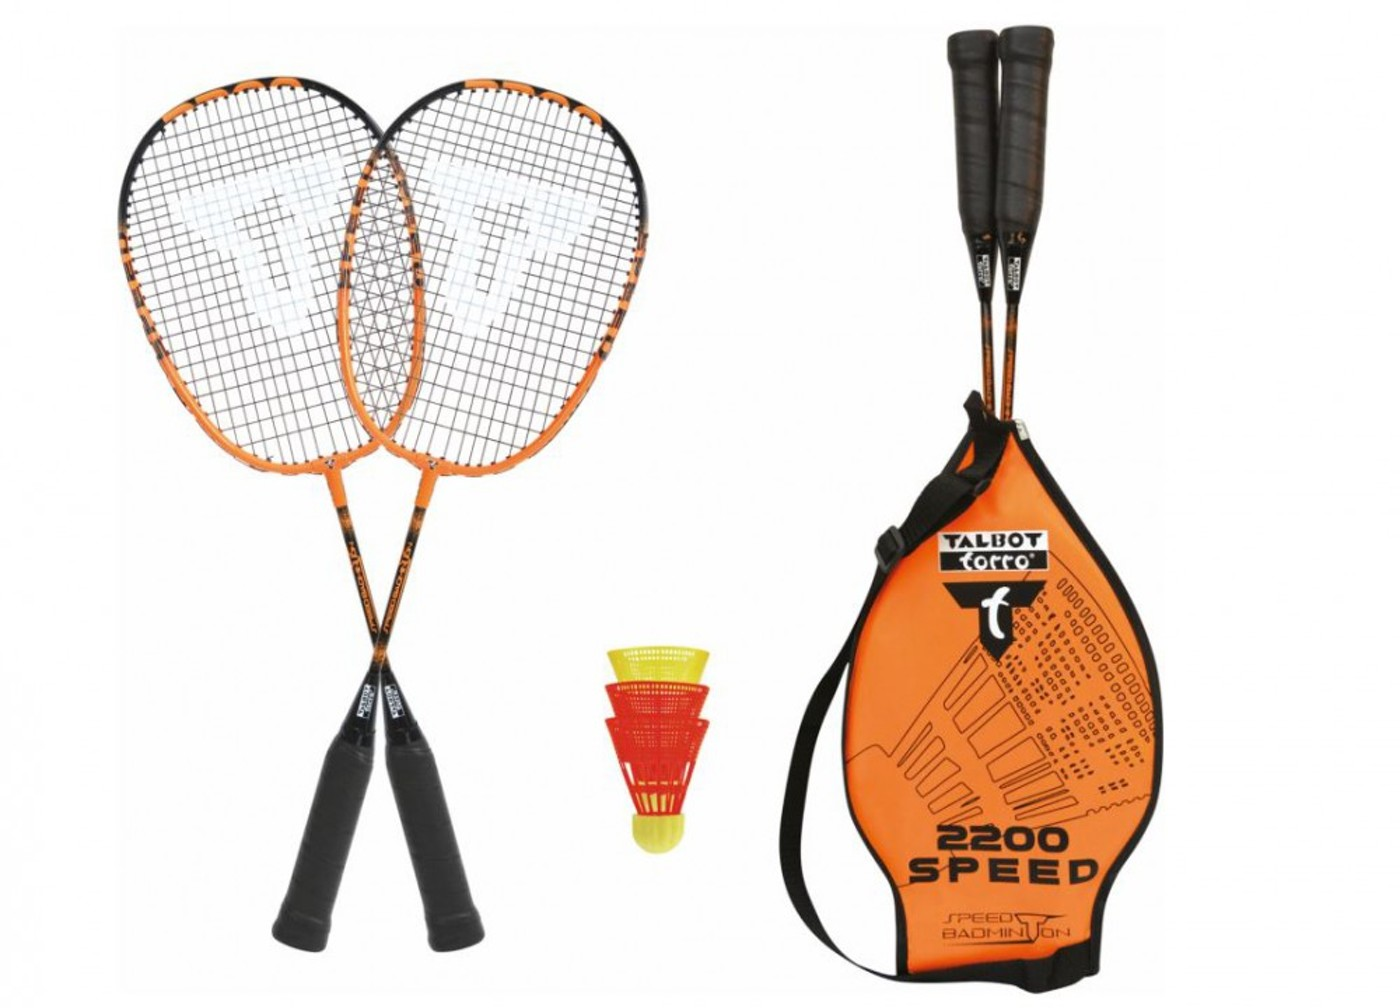 TALBOT TORRO Badminton Set Speed 2200